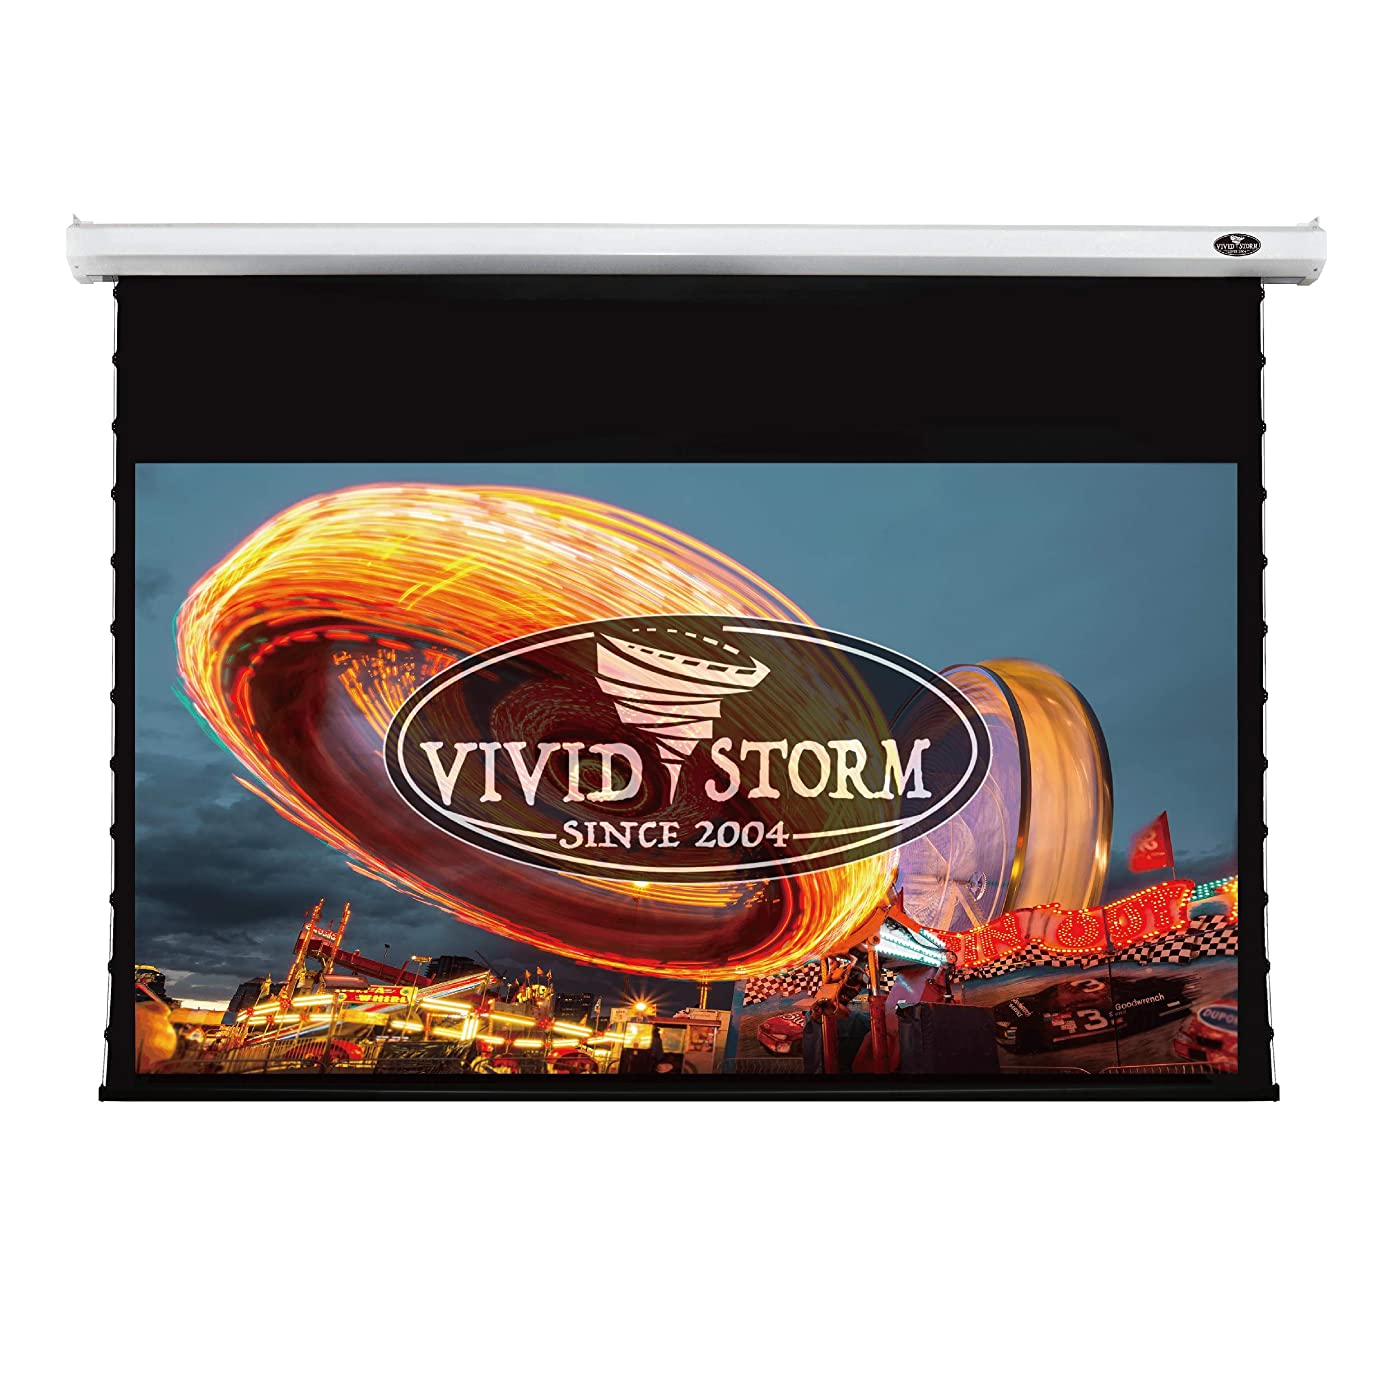 VIVIDSTORM 4K/3D/UHD Deluxe Tab-tensioned Screen,Electric Drop Down Projector Screen,120-inch Diagonal 16:9, White screen material, Wireless 12V projector trigger,Model: V6JLW120H